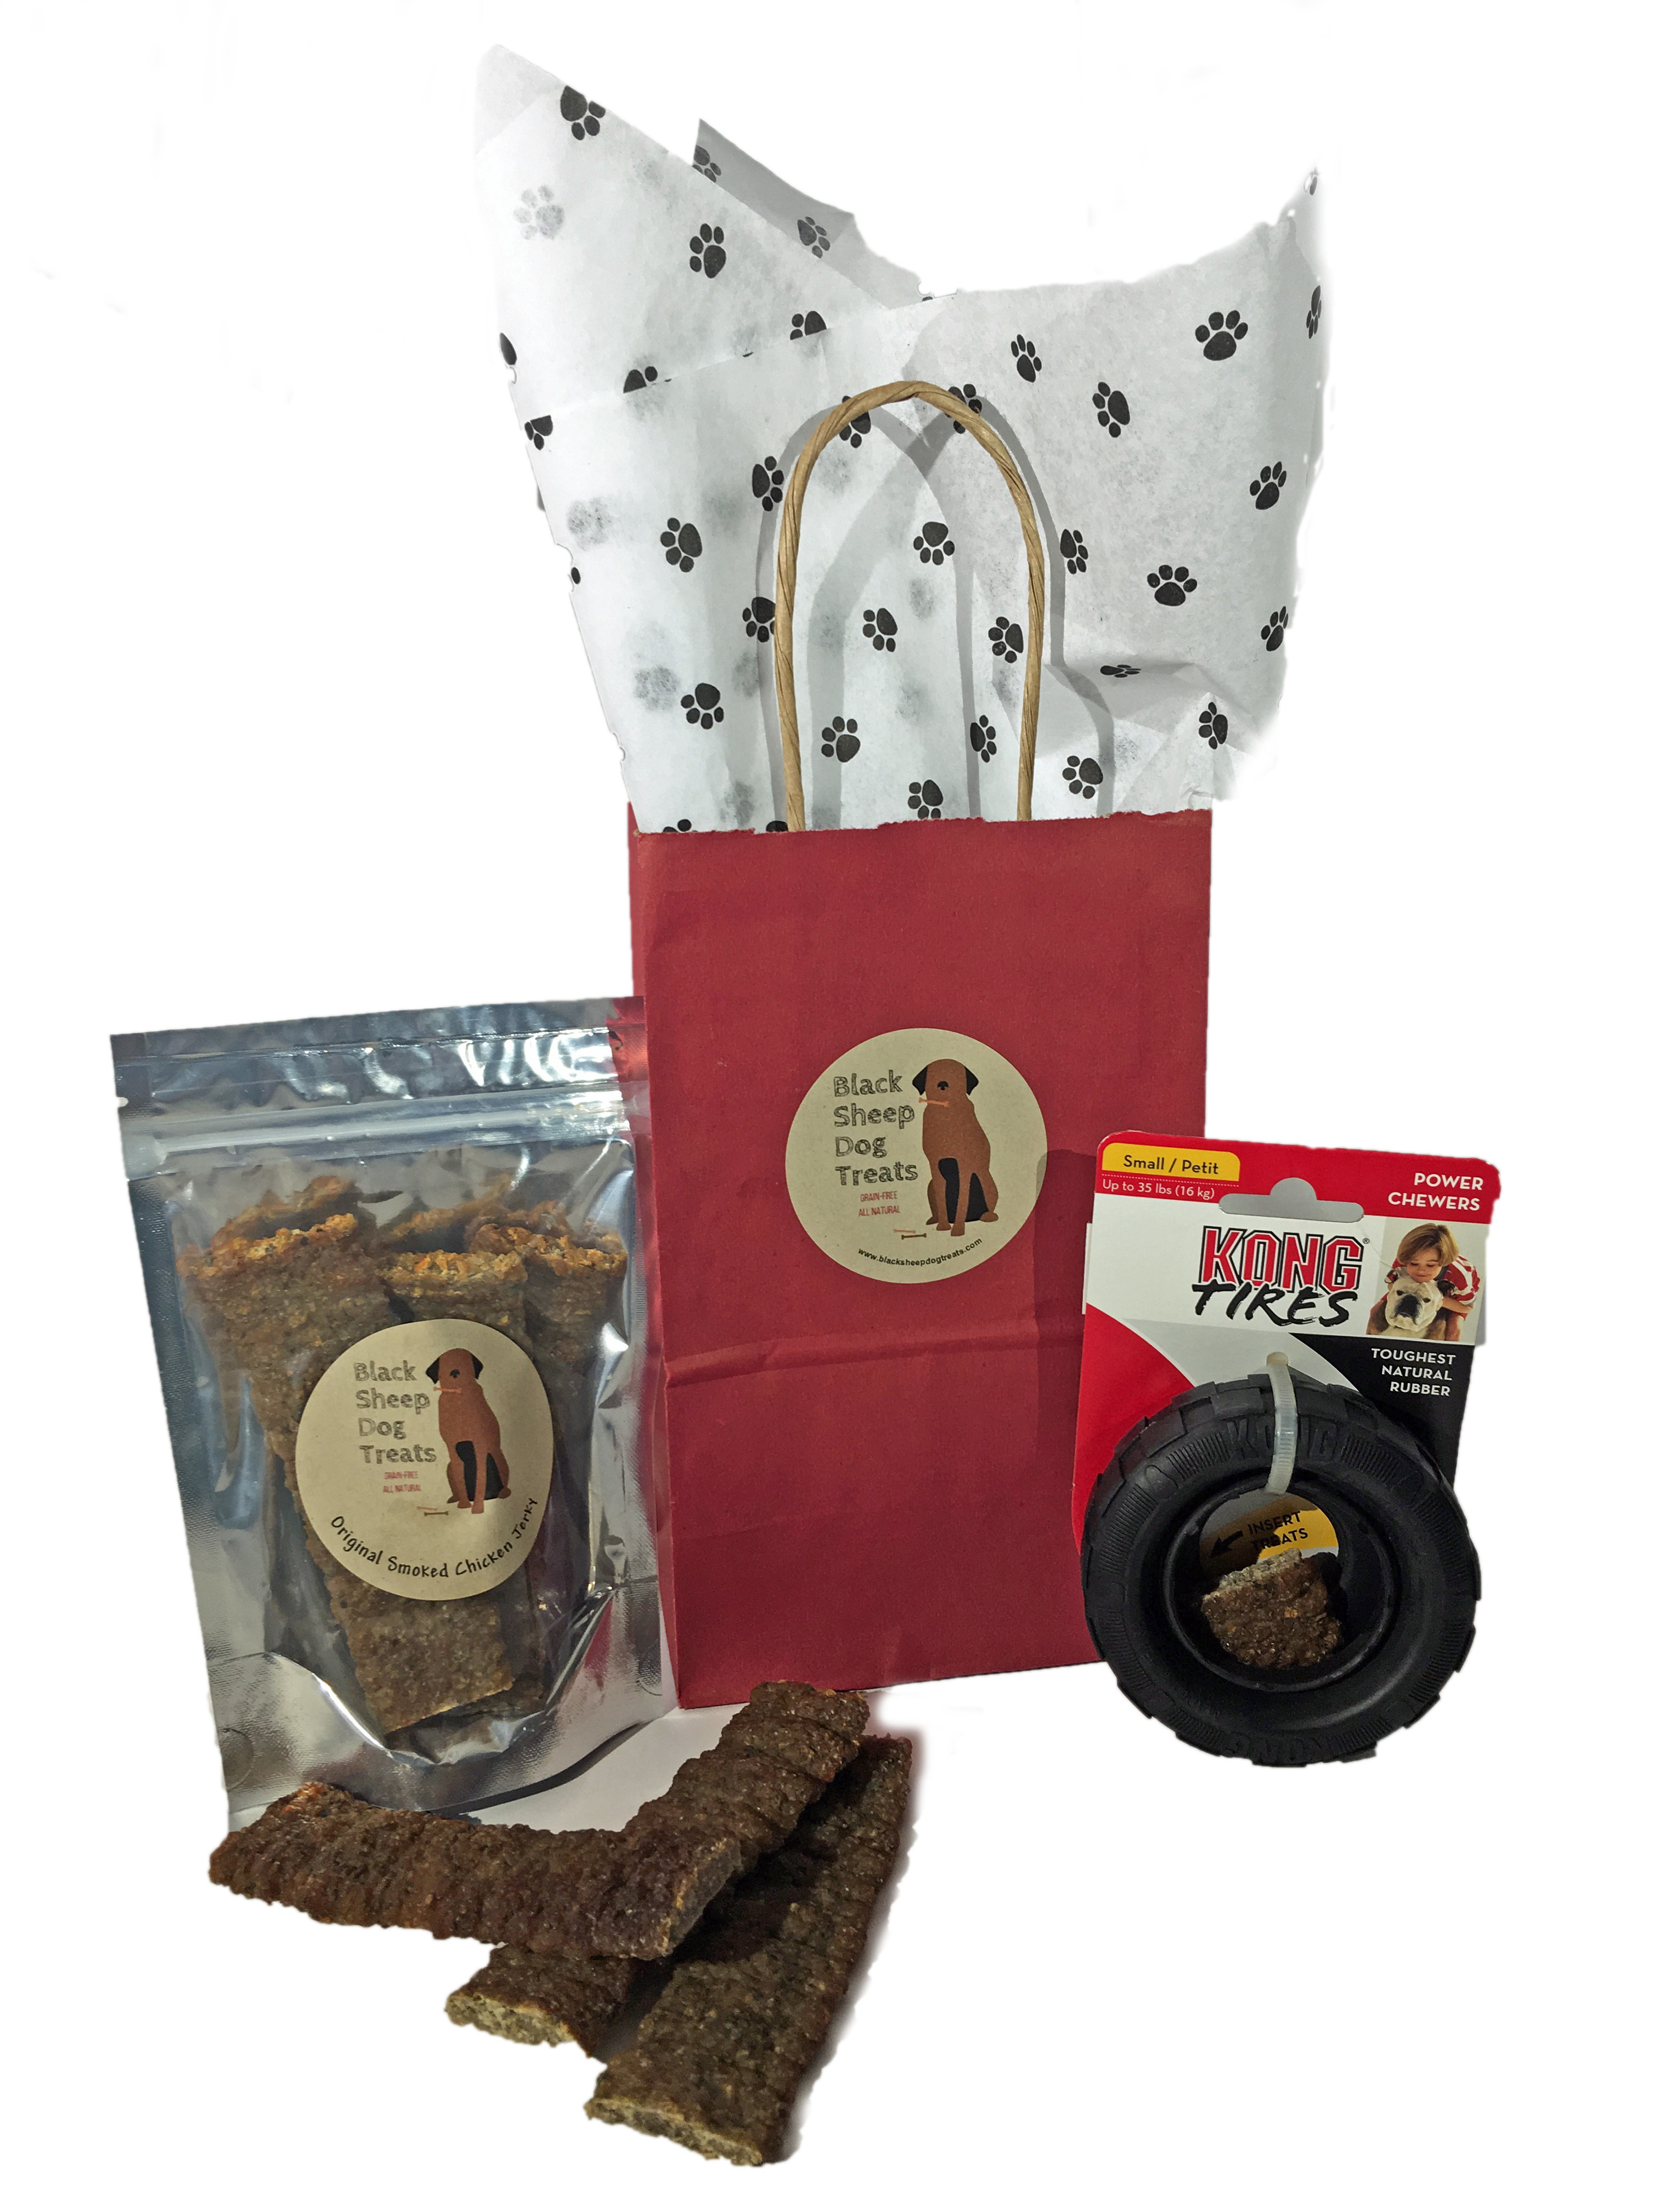 Jerky and KONG TRAXX Toy Gift Set 00010